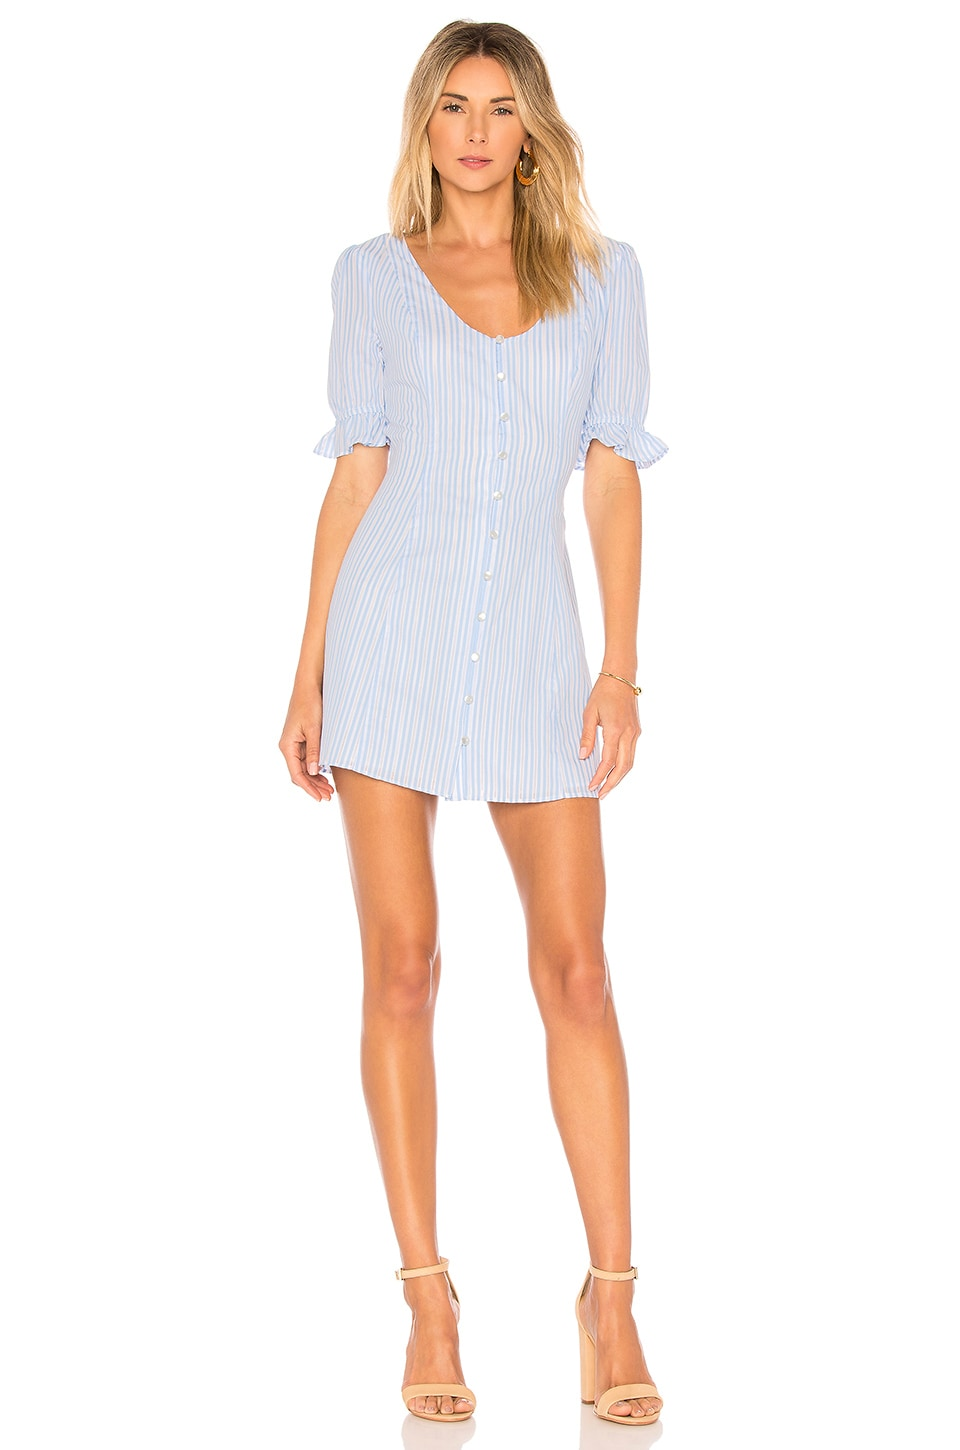 L'Academie The Belize Dress in Sky Stripe